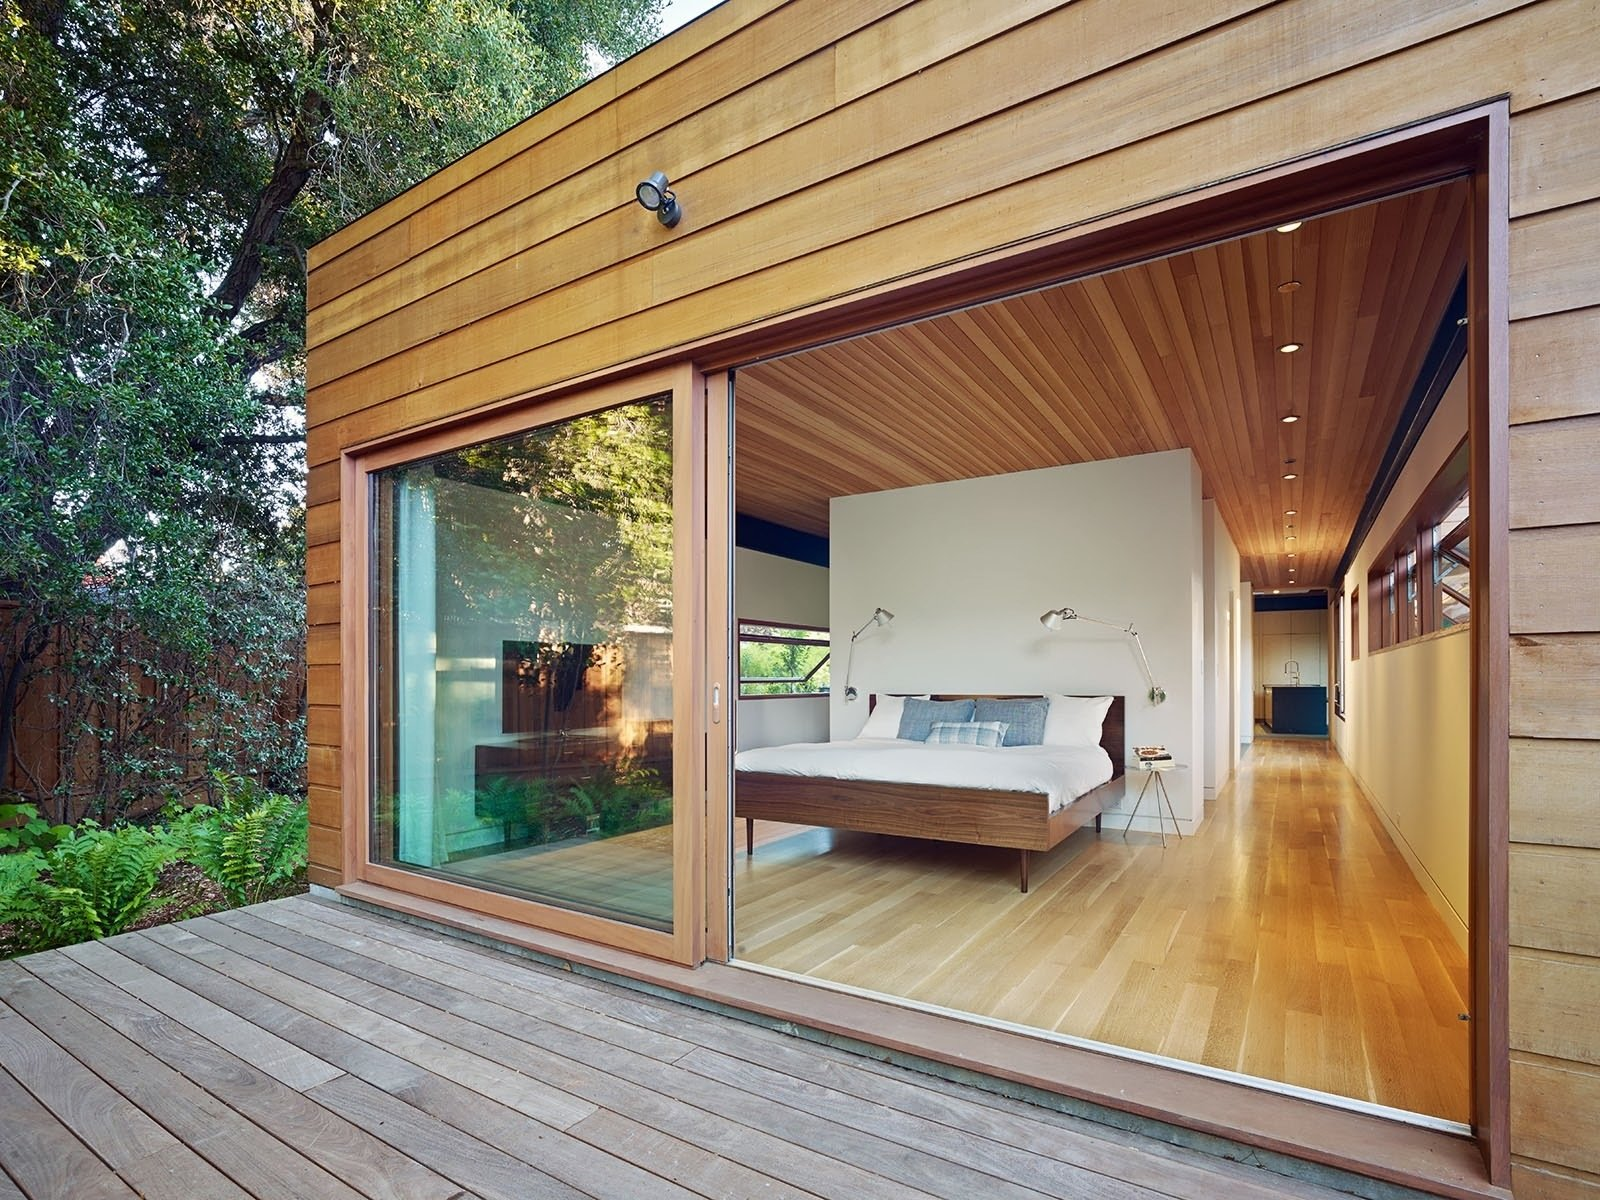 silicon valley smart home spiegel aihara workshop bedroom and deck